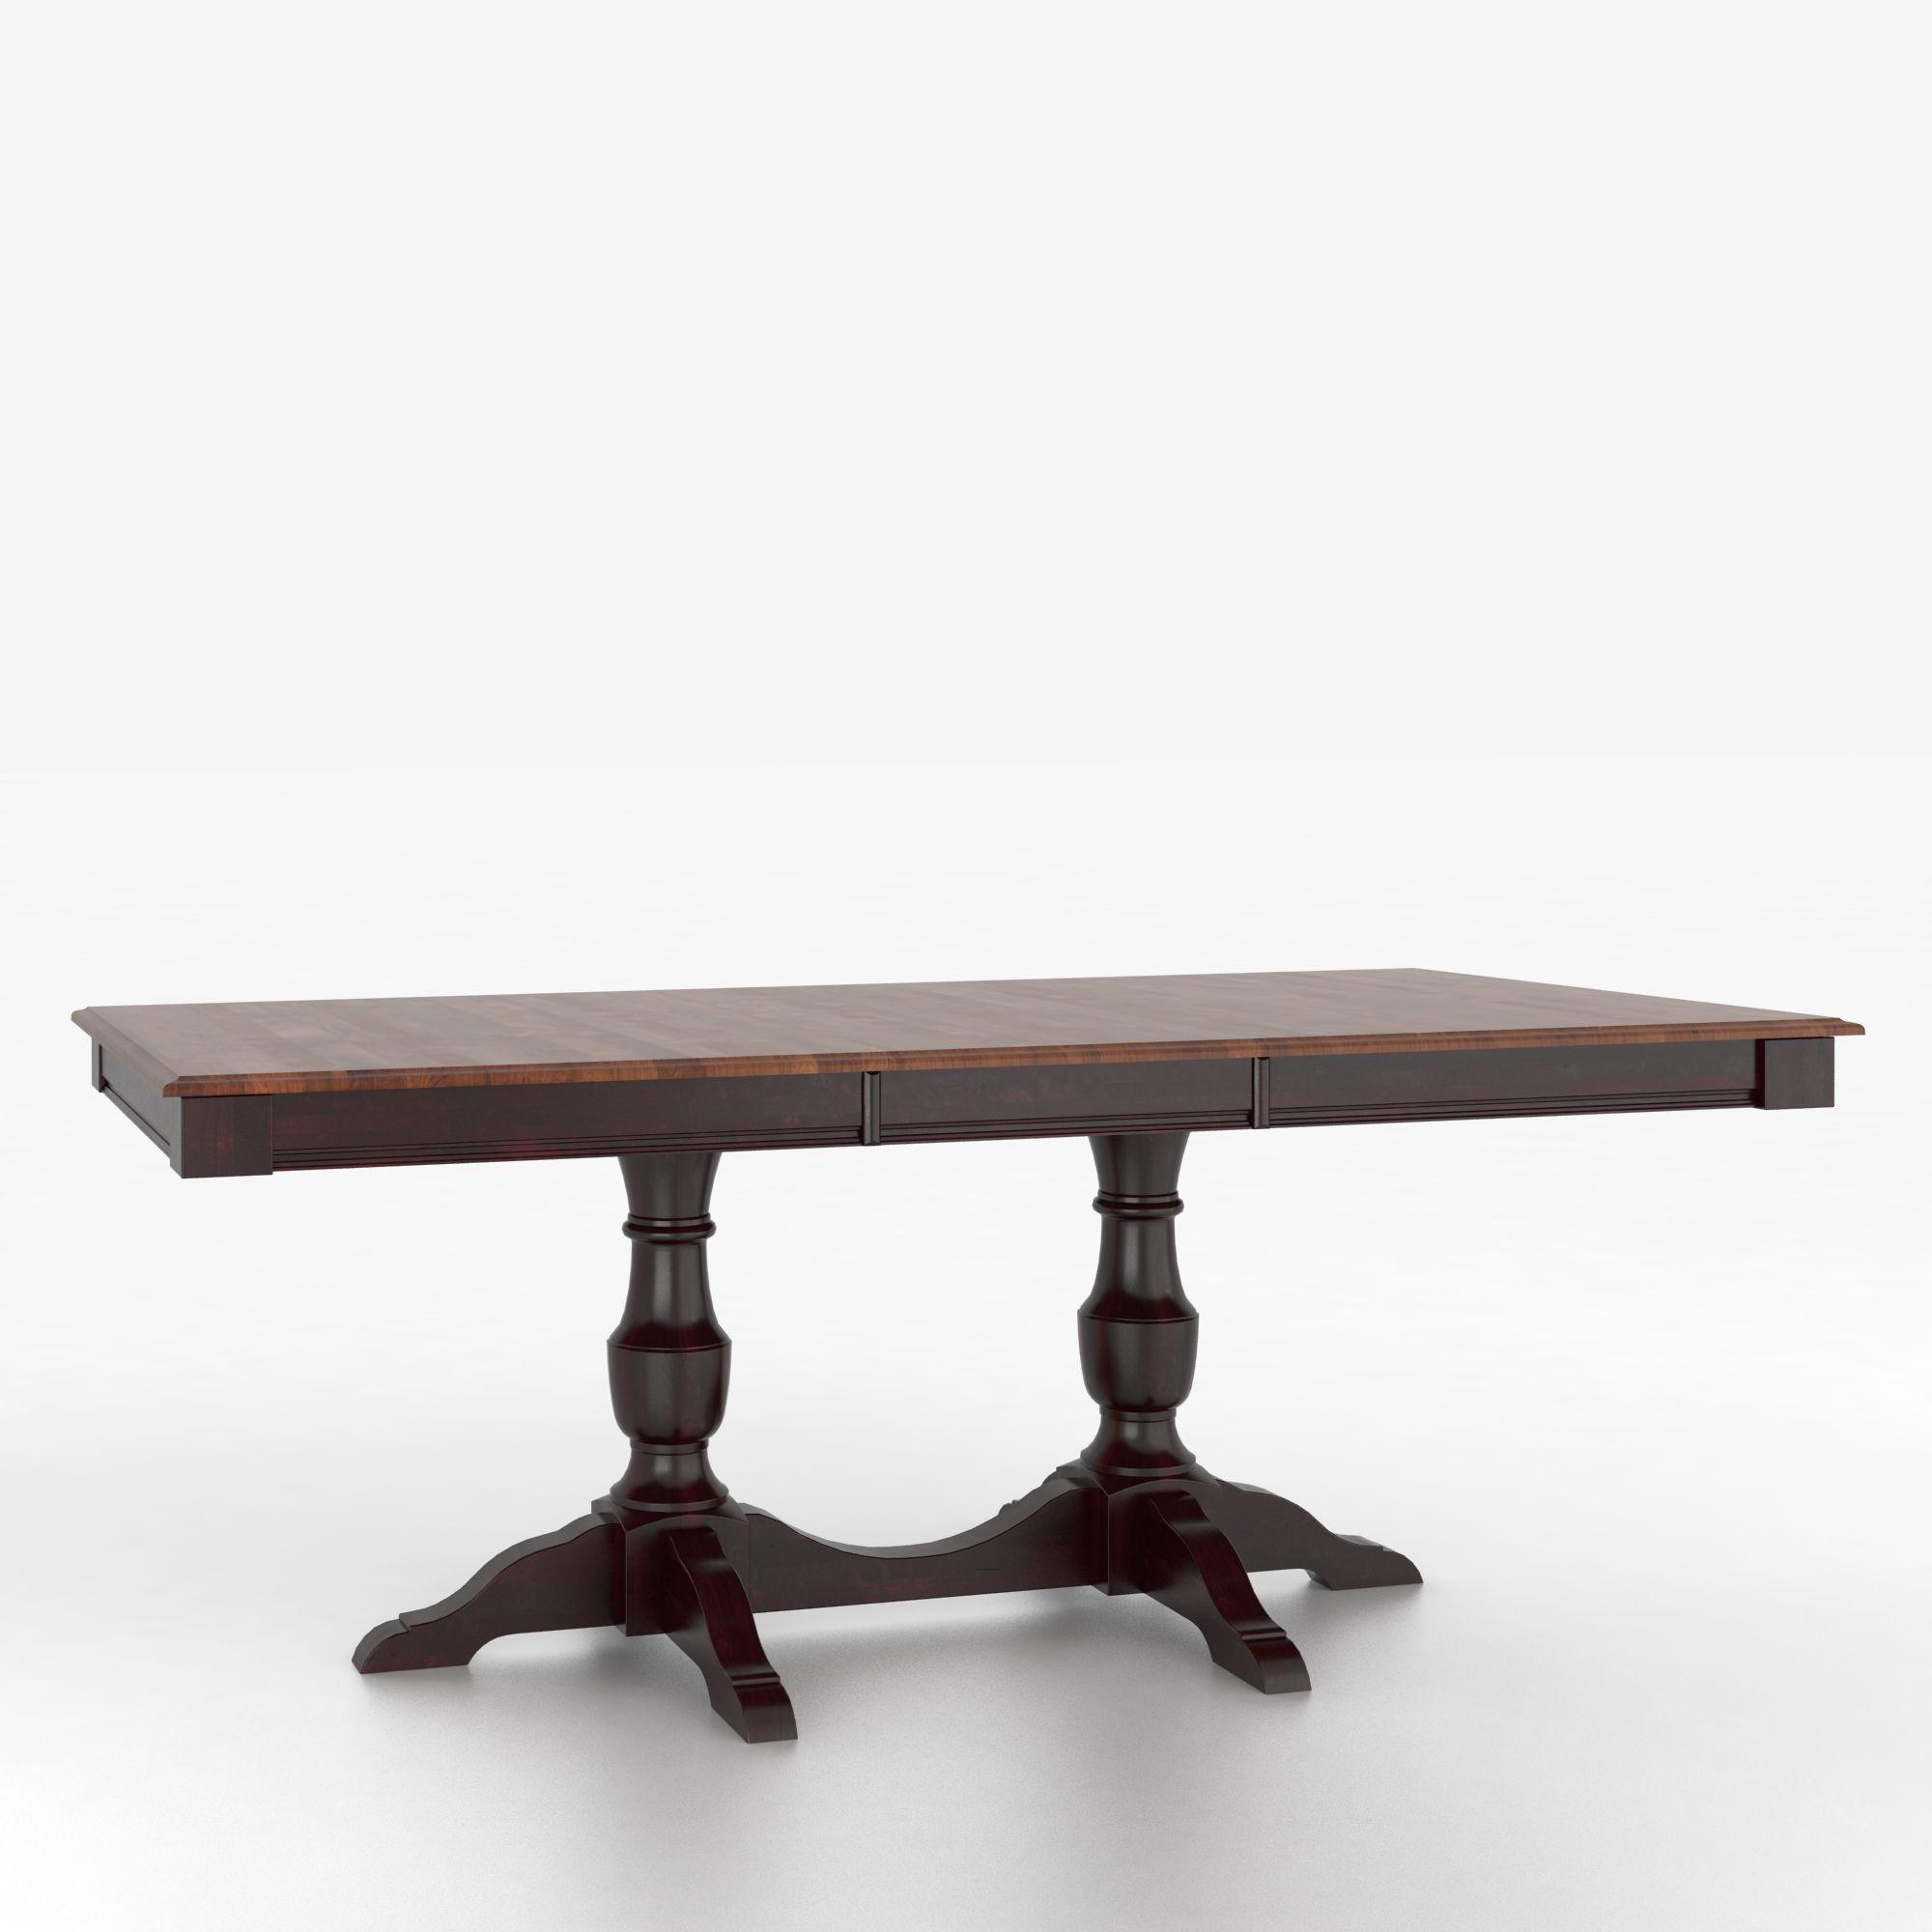 Custom Dining Tables Customizable Rectangular Table with Pedestal by Canadel at Steger's Furniture